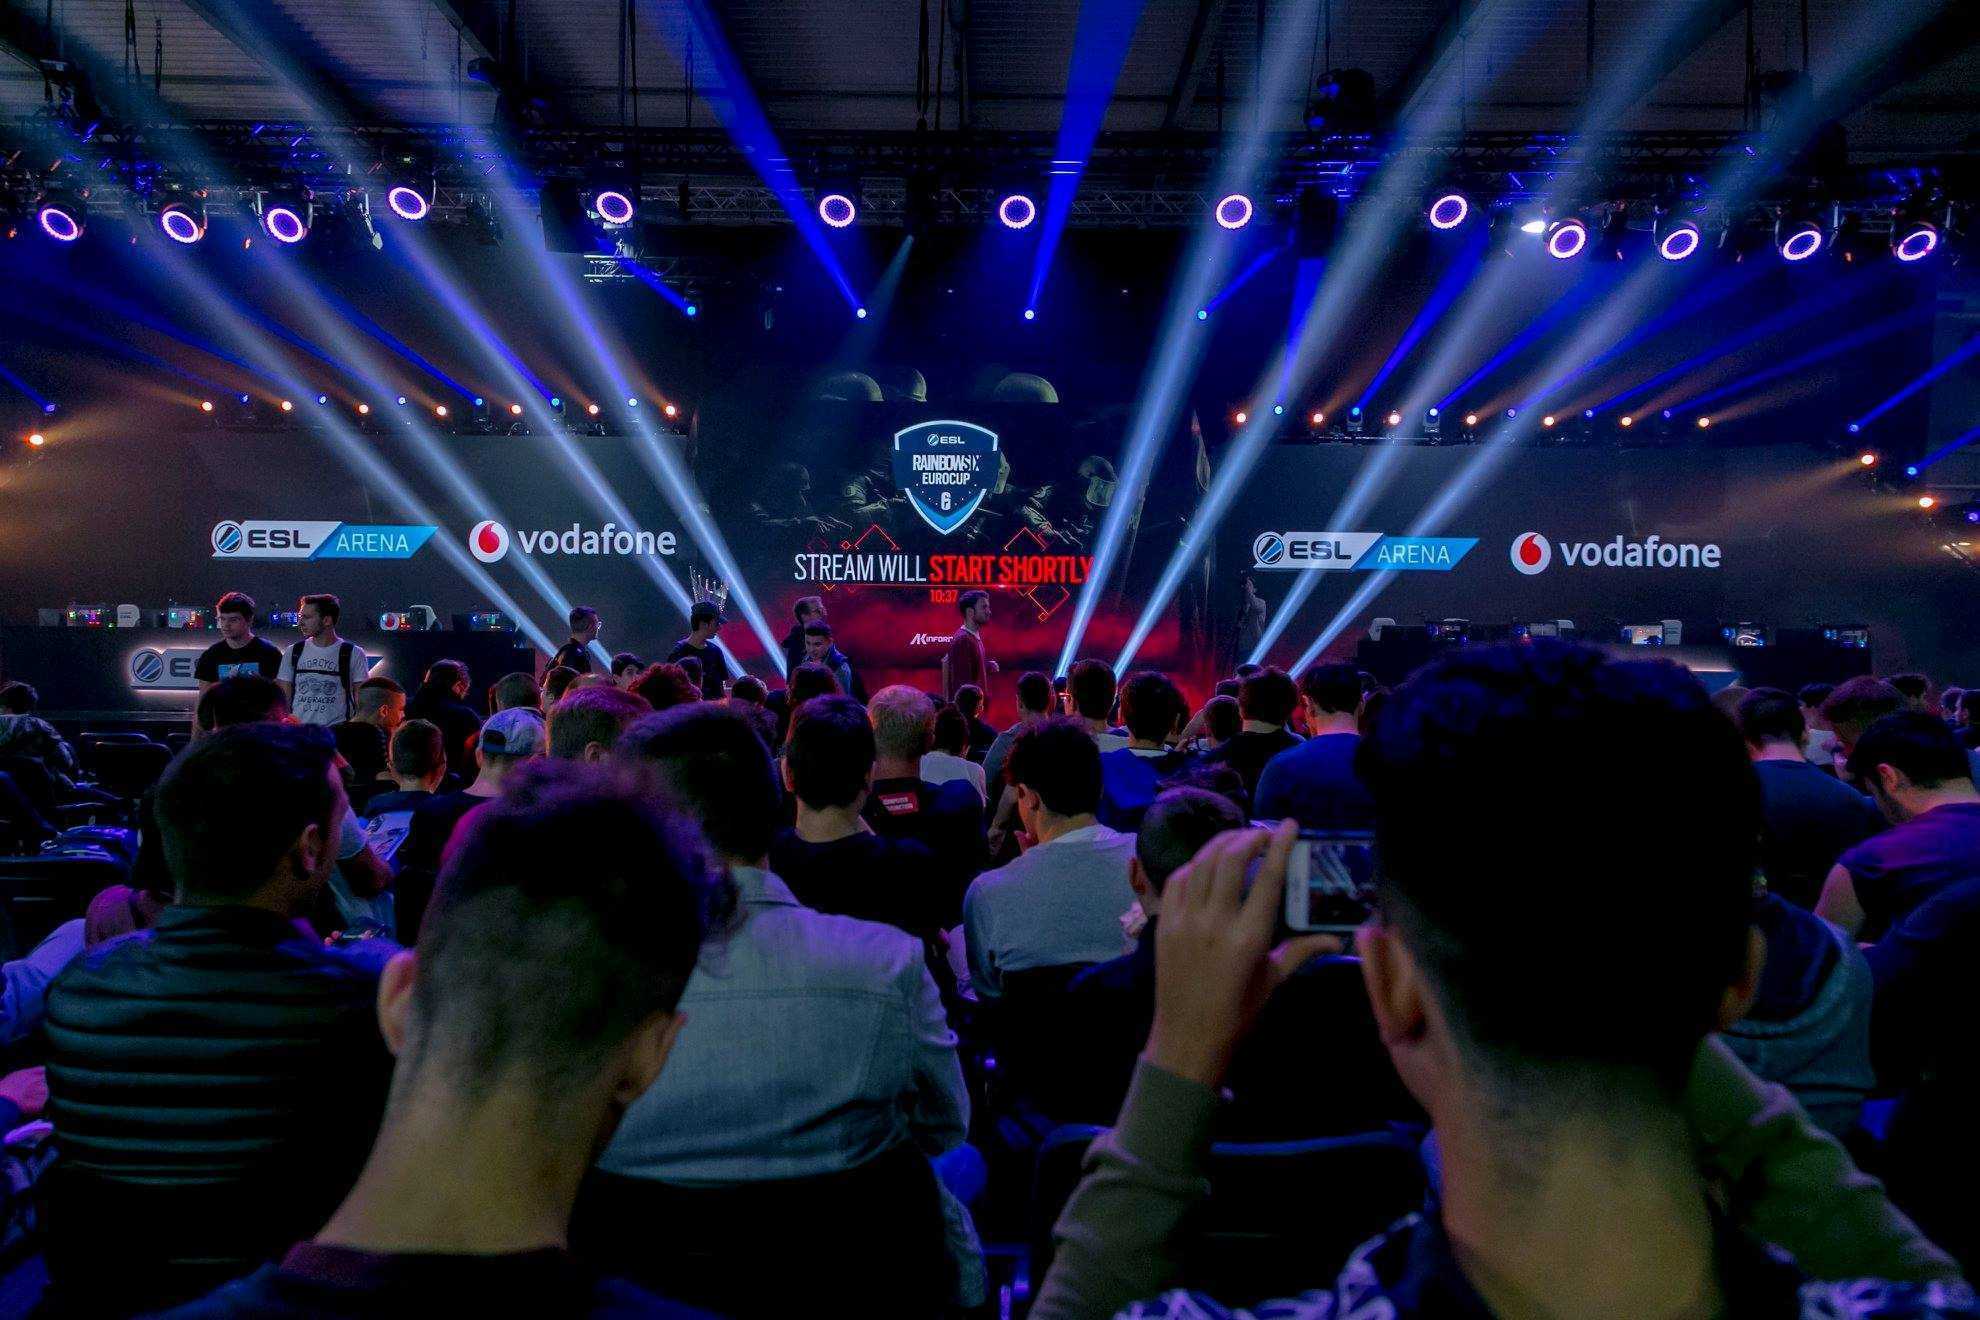 ESL_Arena_powered_Vodafone